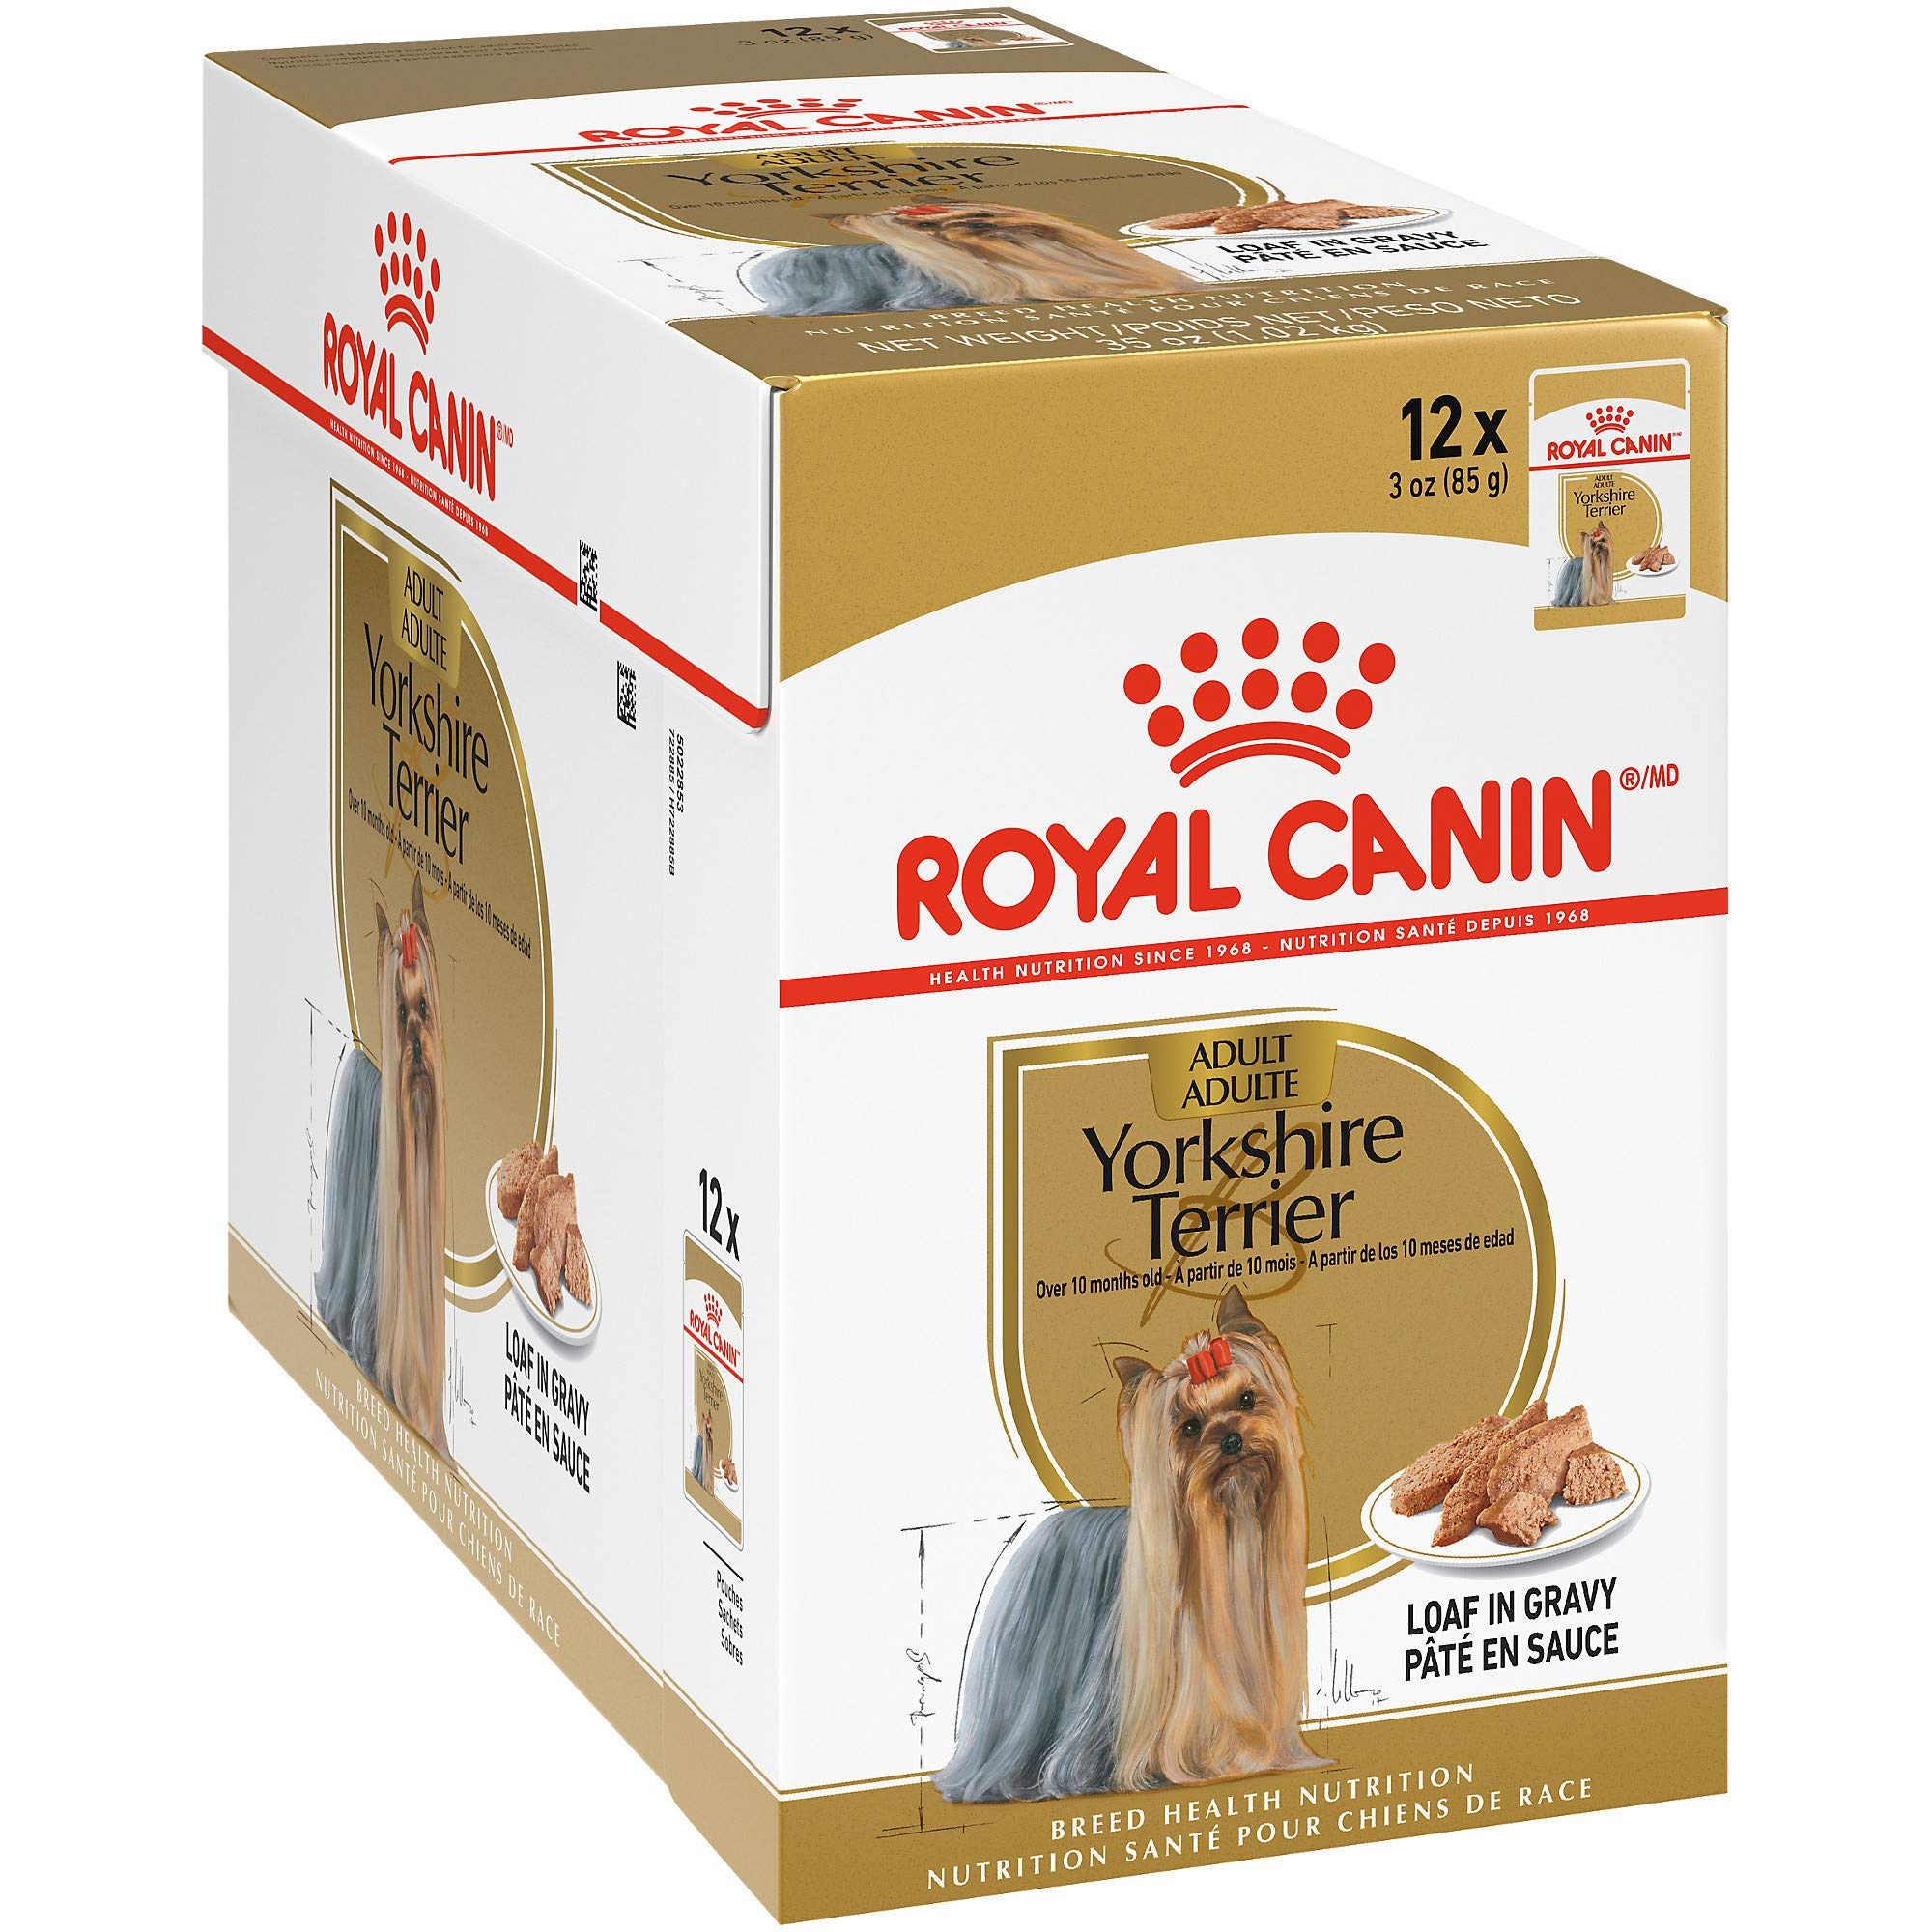 Royal Canin Breed Health Nutrition Yorkshire Terrier Loaf in Gravy Pouch Dog Food, 3 oz Pouch (Pack of 12) by Royal Canin